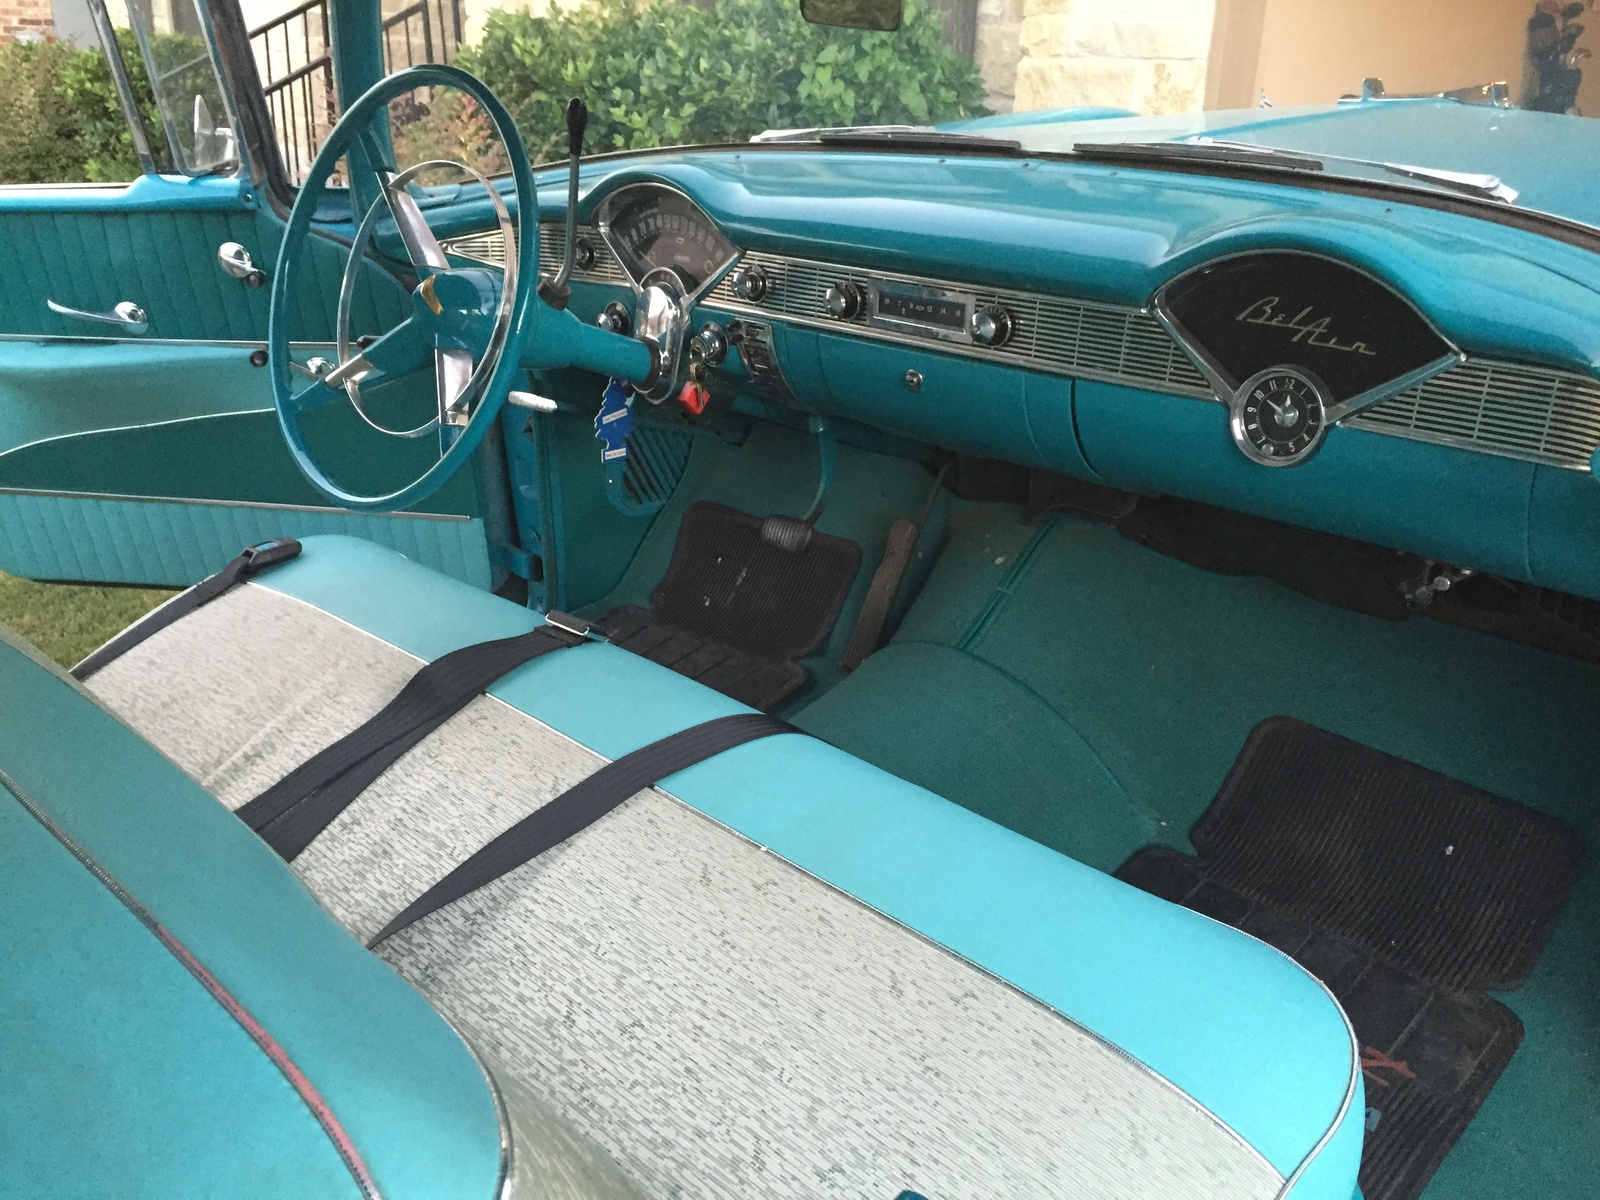 1956 bel air for sale submited images - 1 Of 1 People Found This Helpful